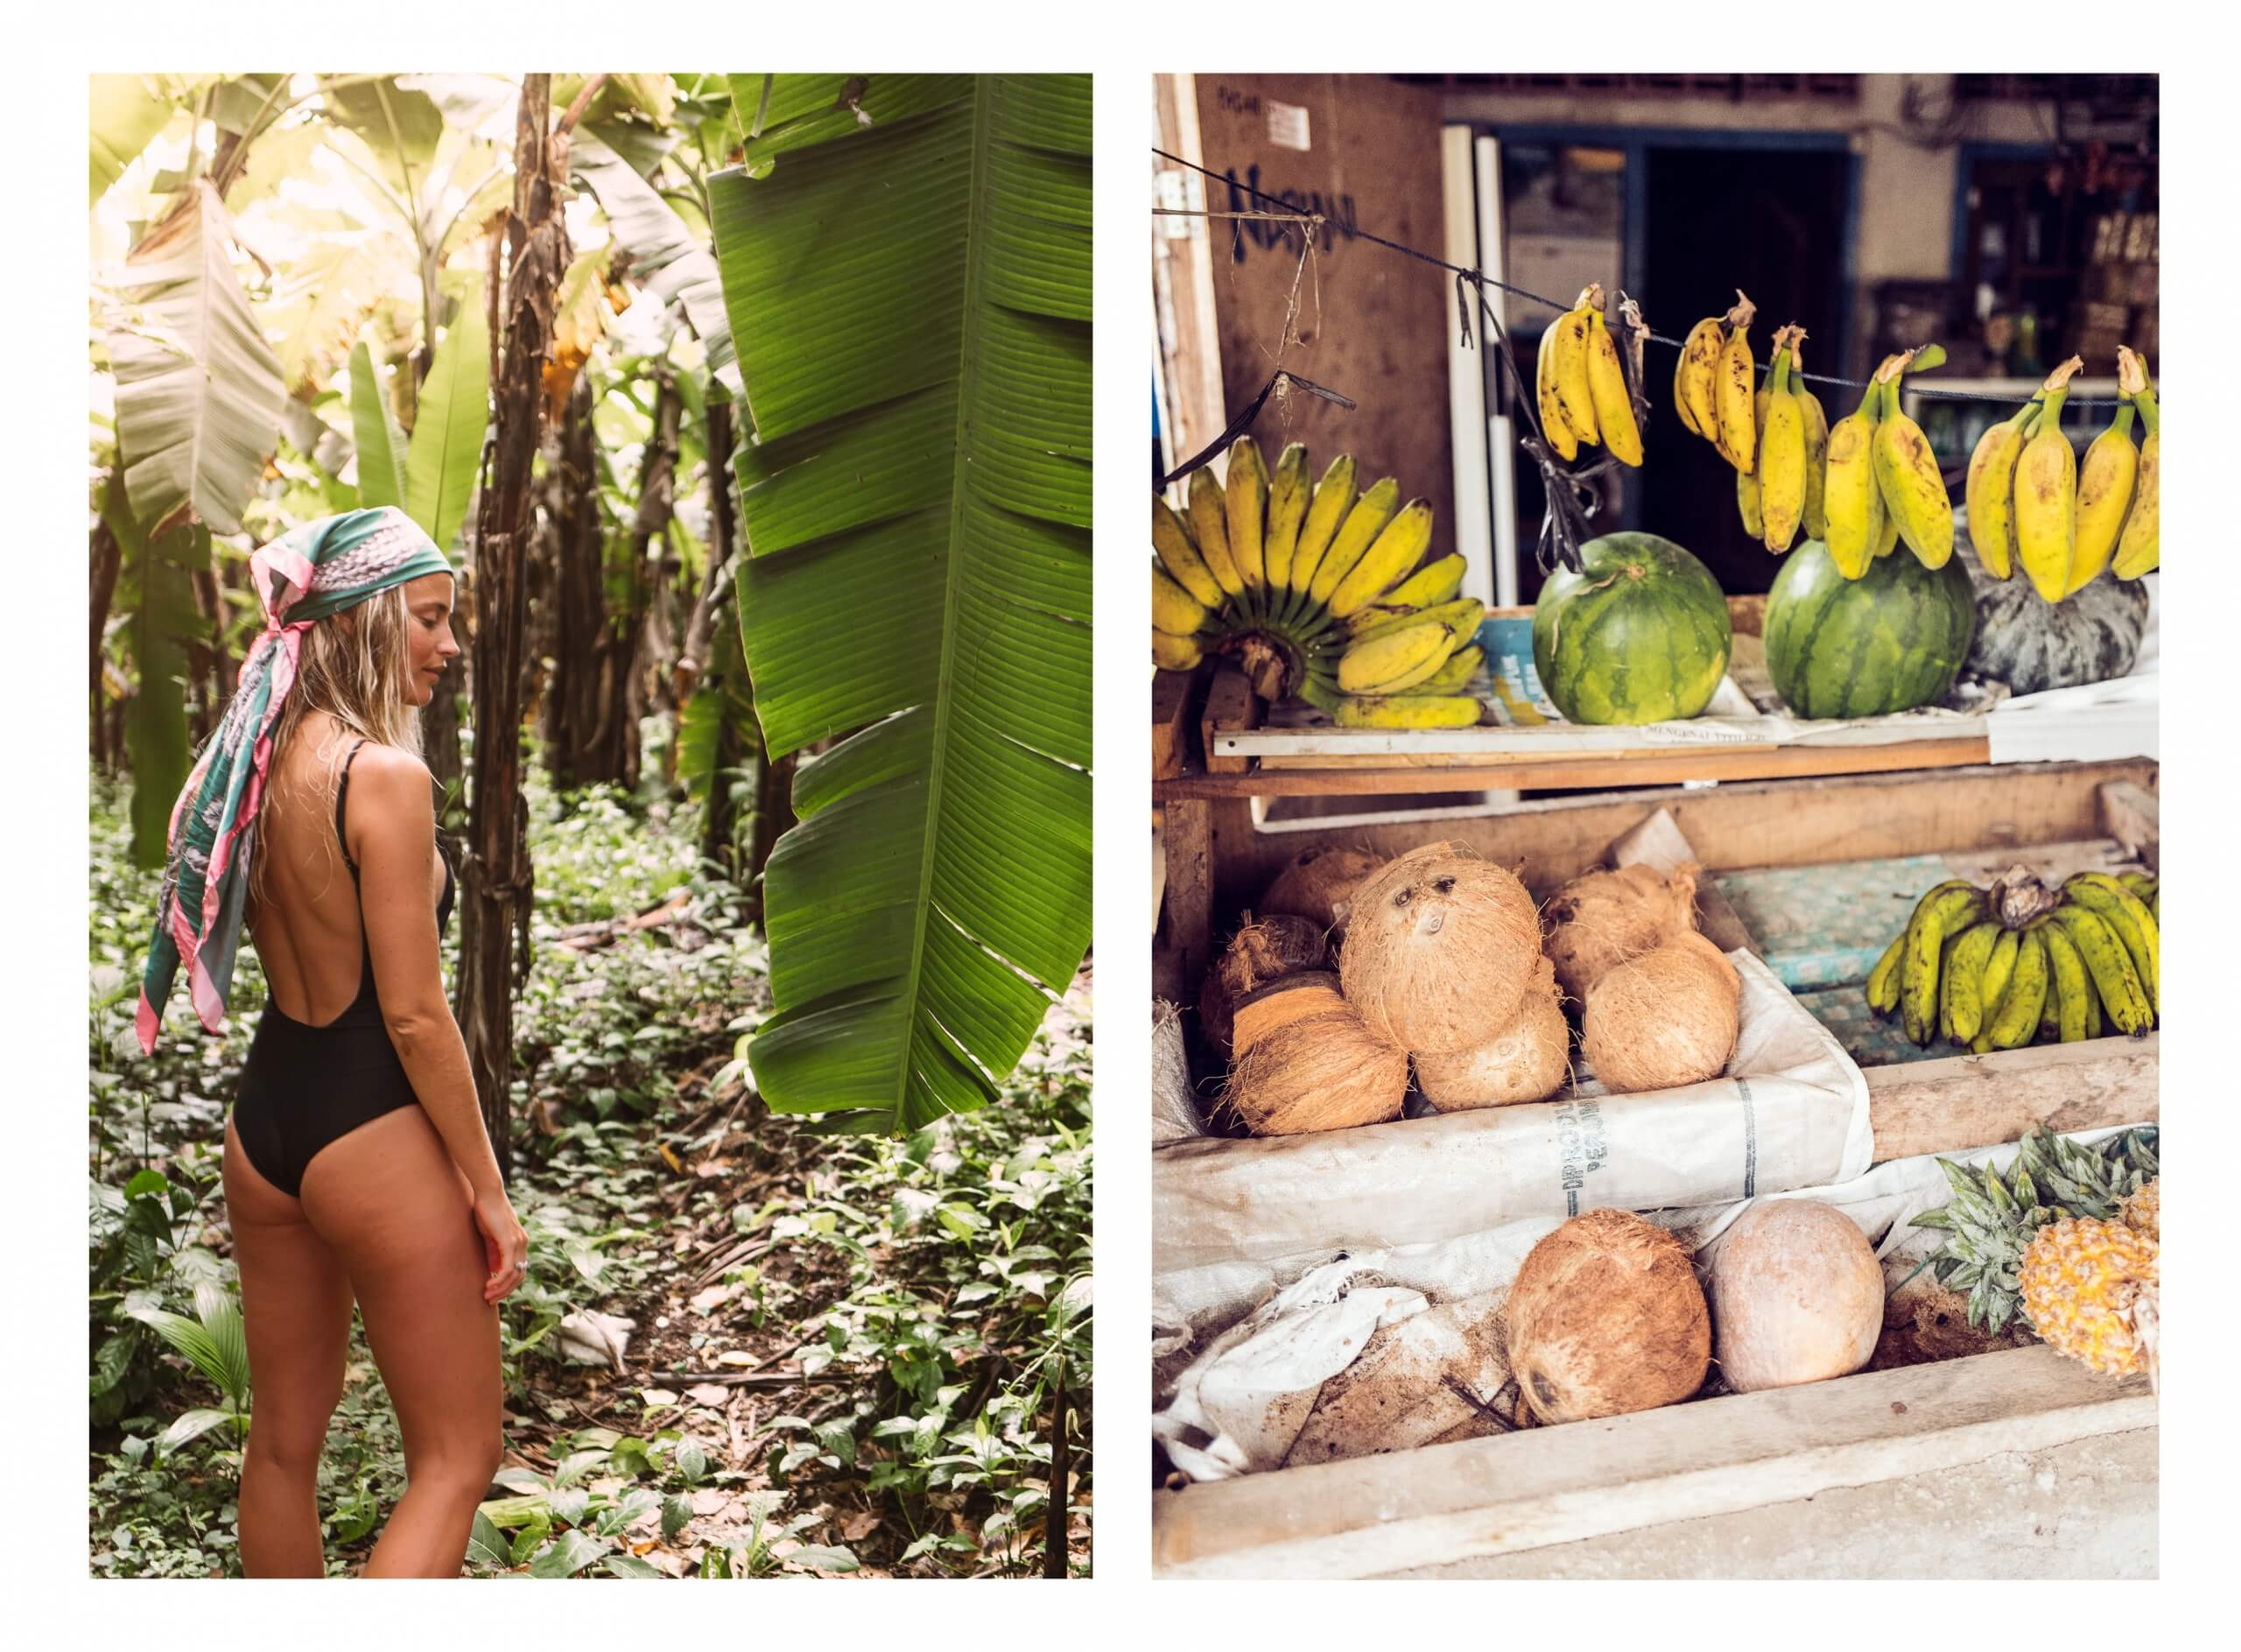 janni-deler-jungle-vibes-lombok-4-of-7-copy